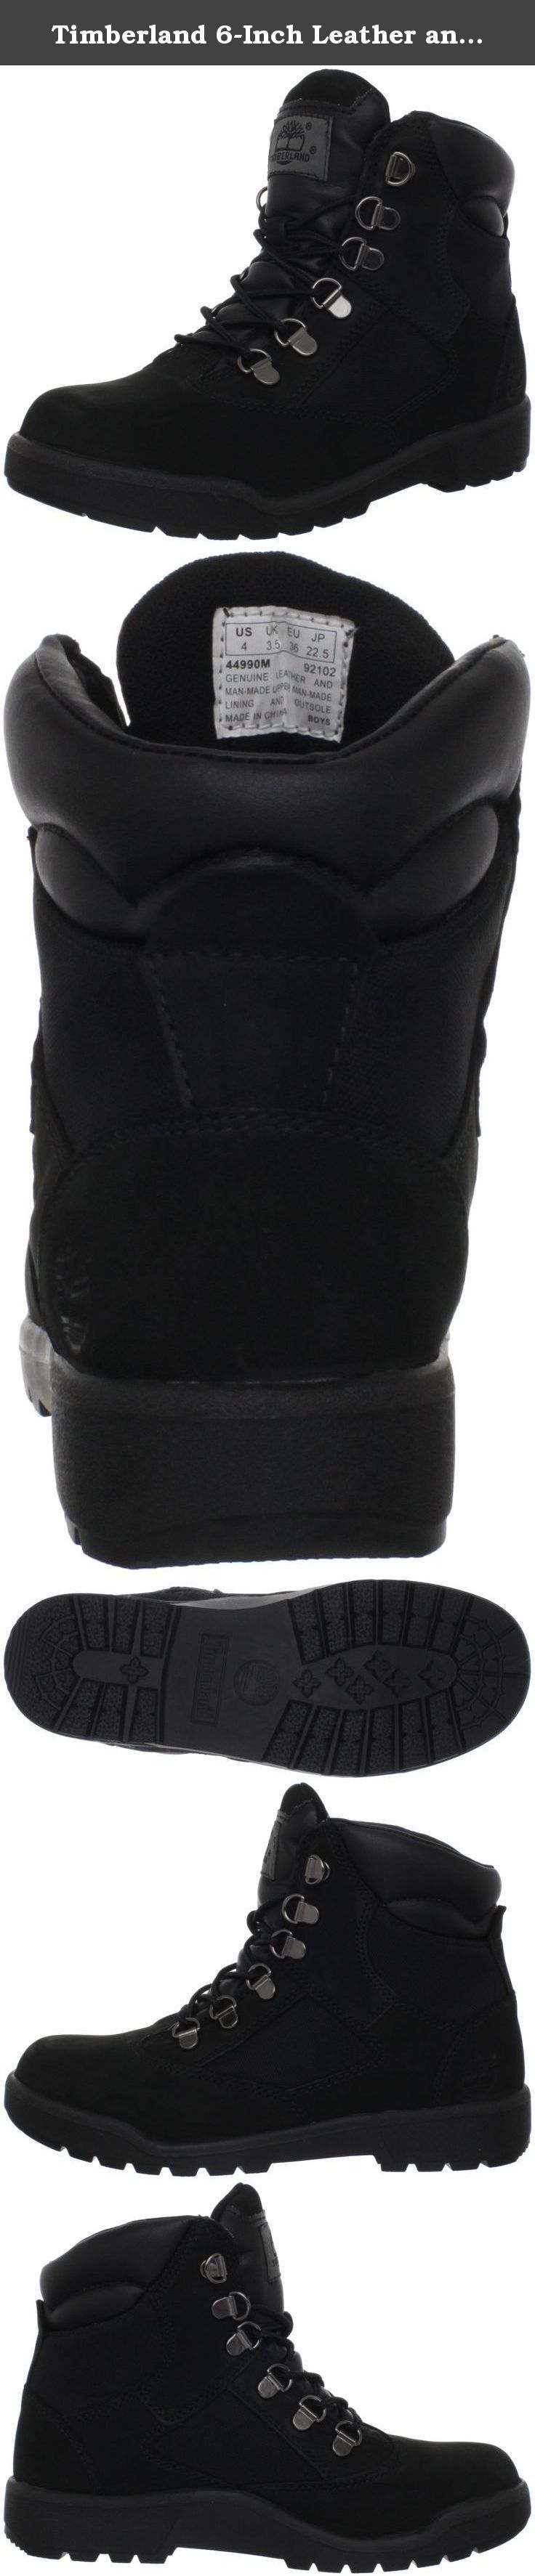 Timberland 6-Inch Leather and Fabric Field Boot (Toddler/Little Kid/Big Kid),Black Nubuck,6 M US Big Kid. The Timberland Field Boot features a premium, full-grain leather or nubuck upper with mesh for comfort, durability and abrasion resistance.Embossed Timberland tree logo and metal plate.